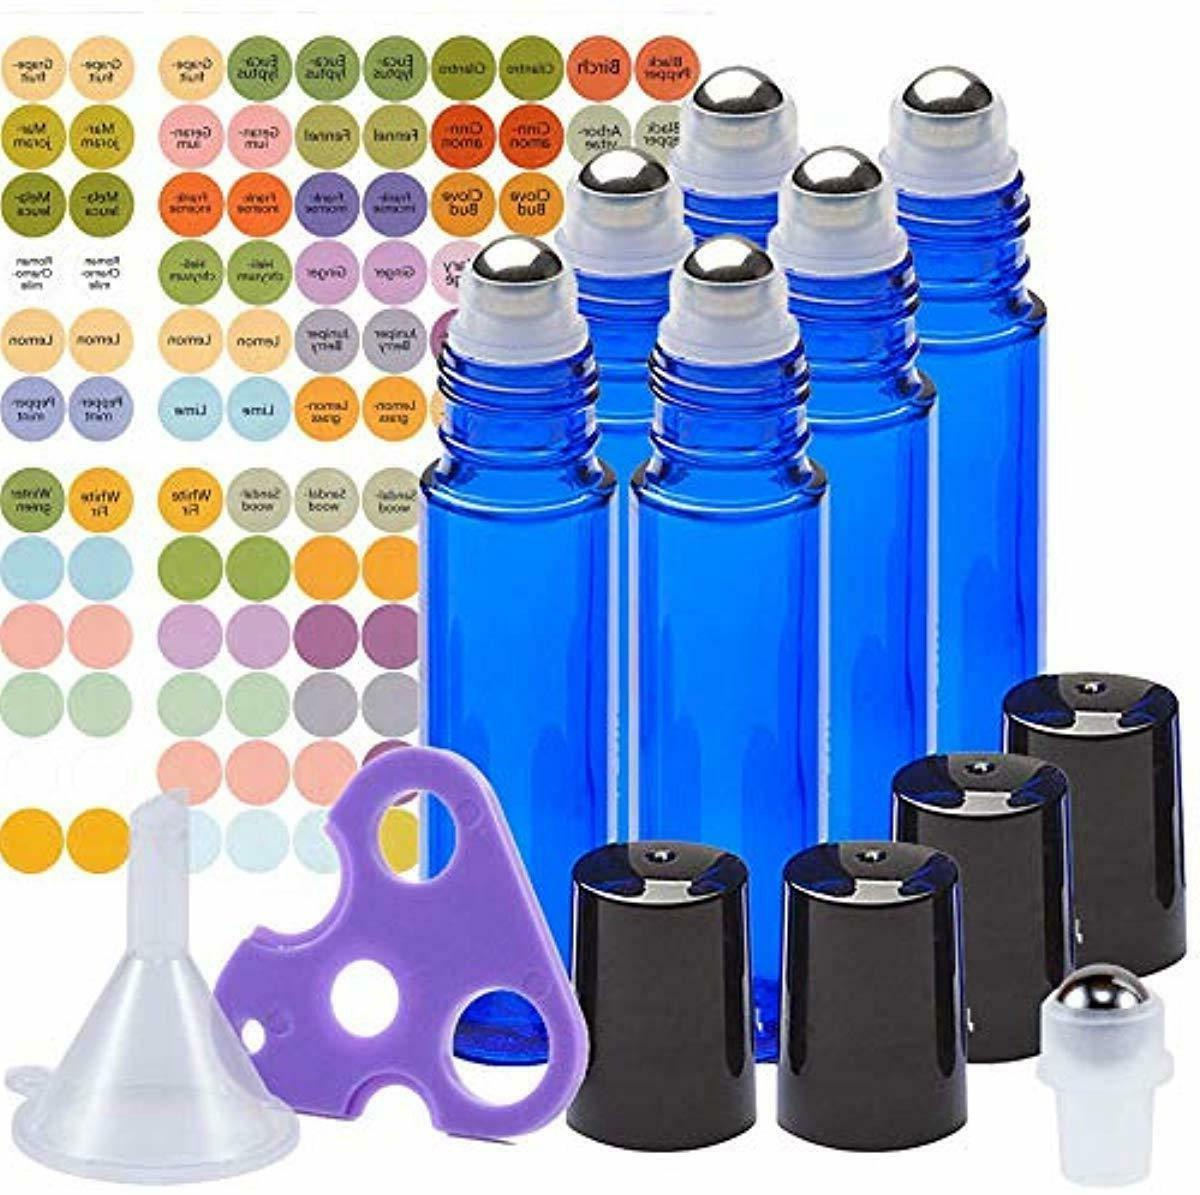 ultimate roller bottles set